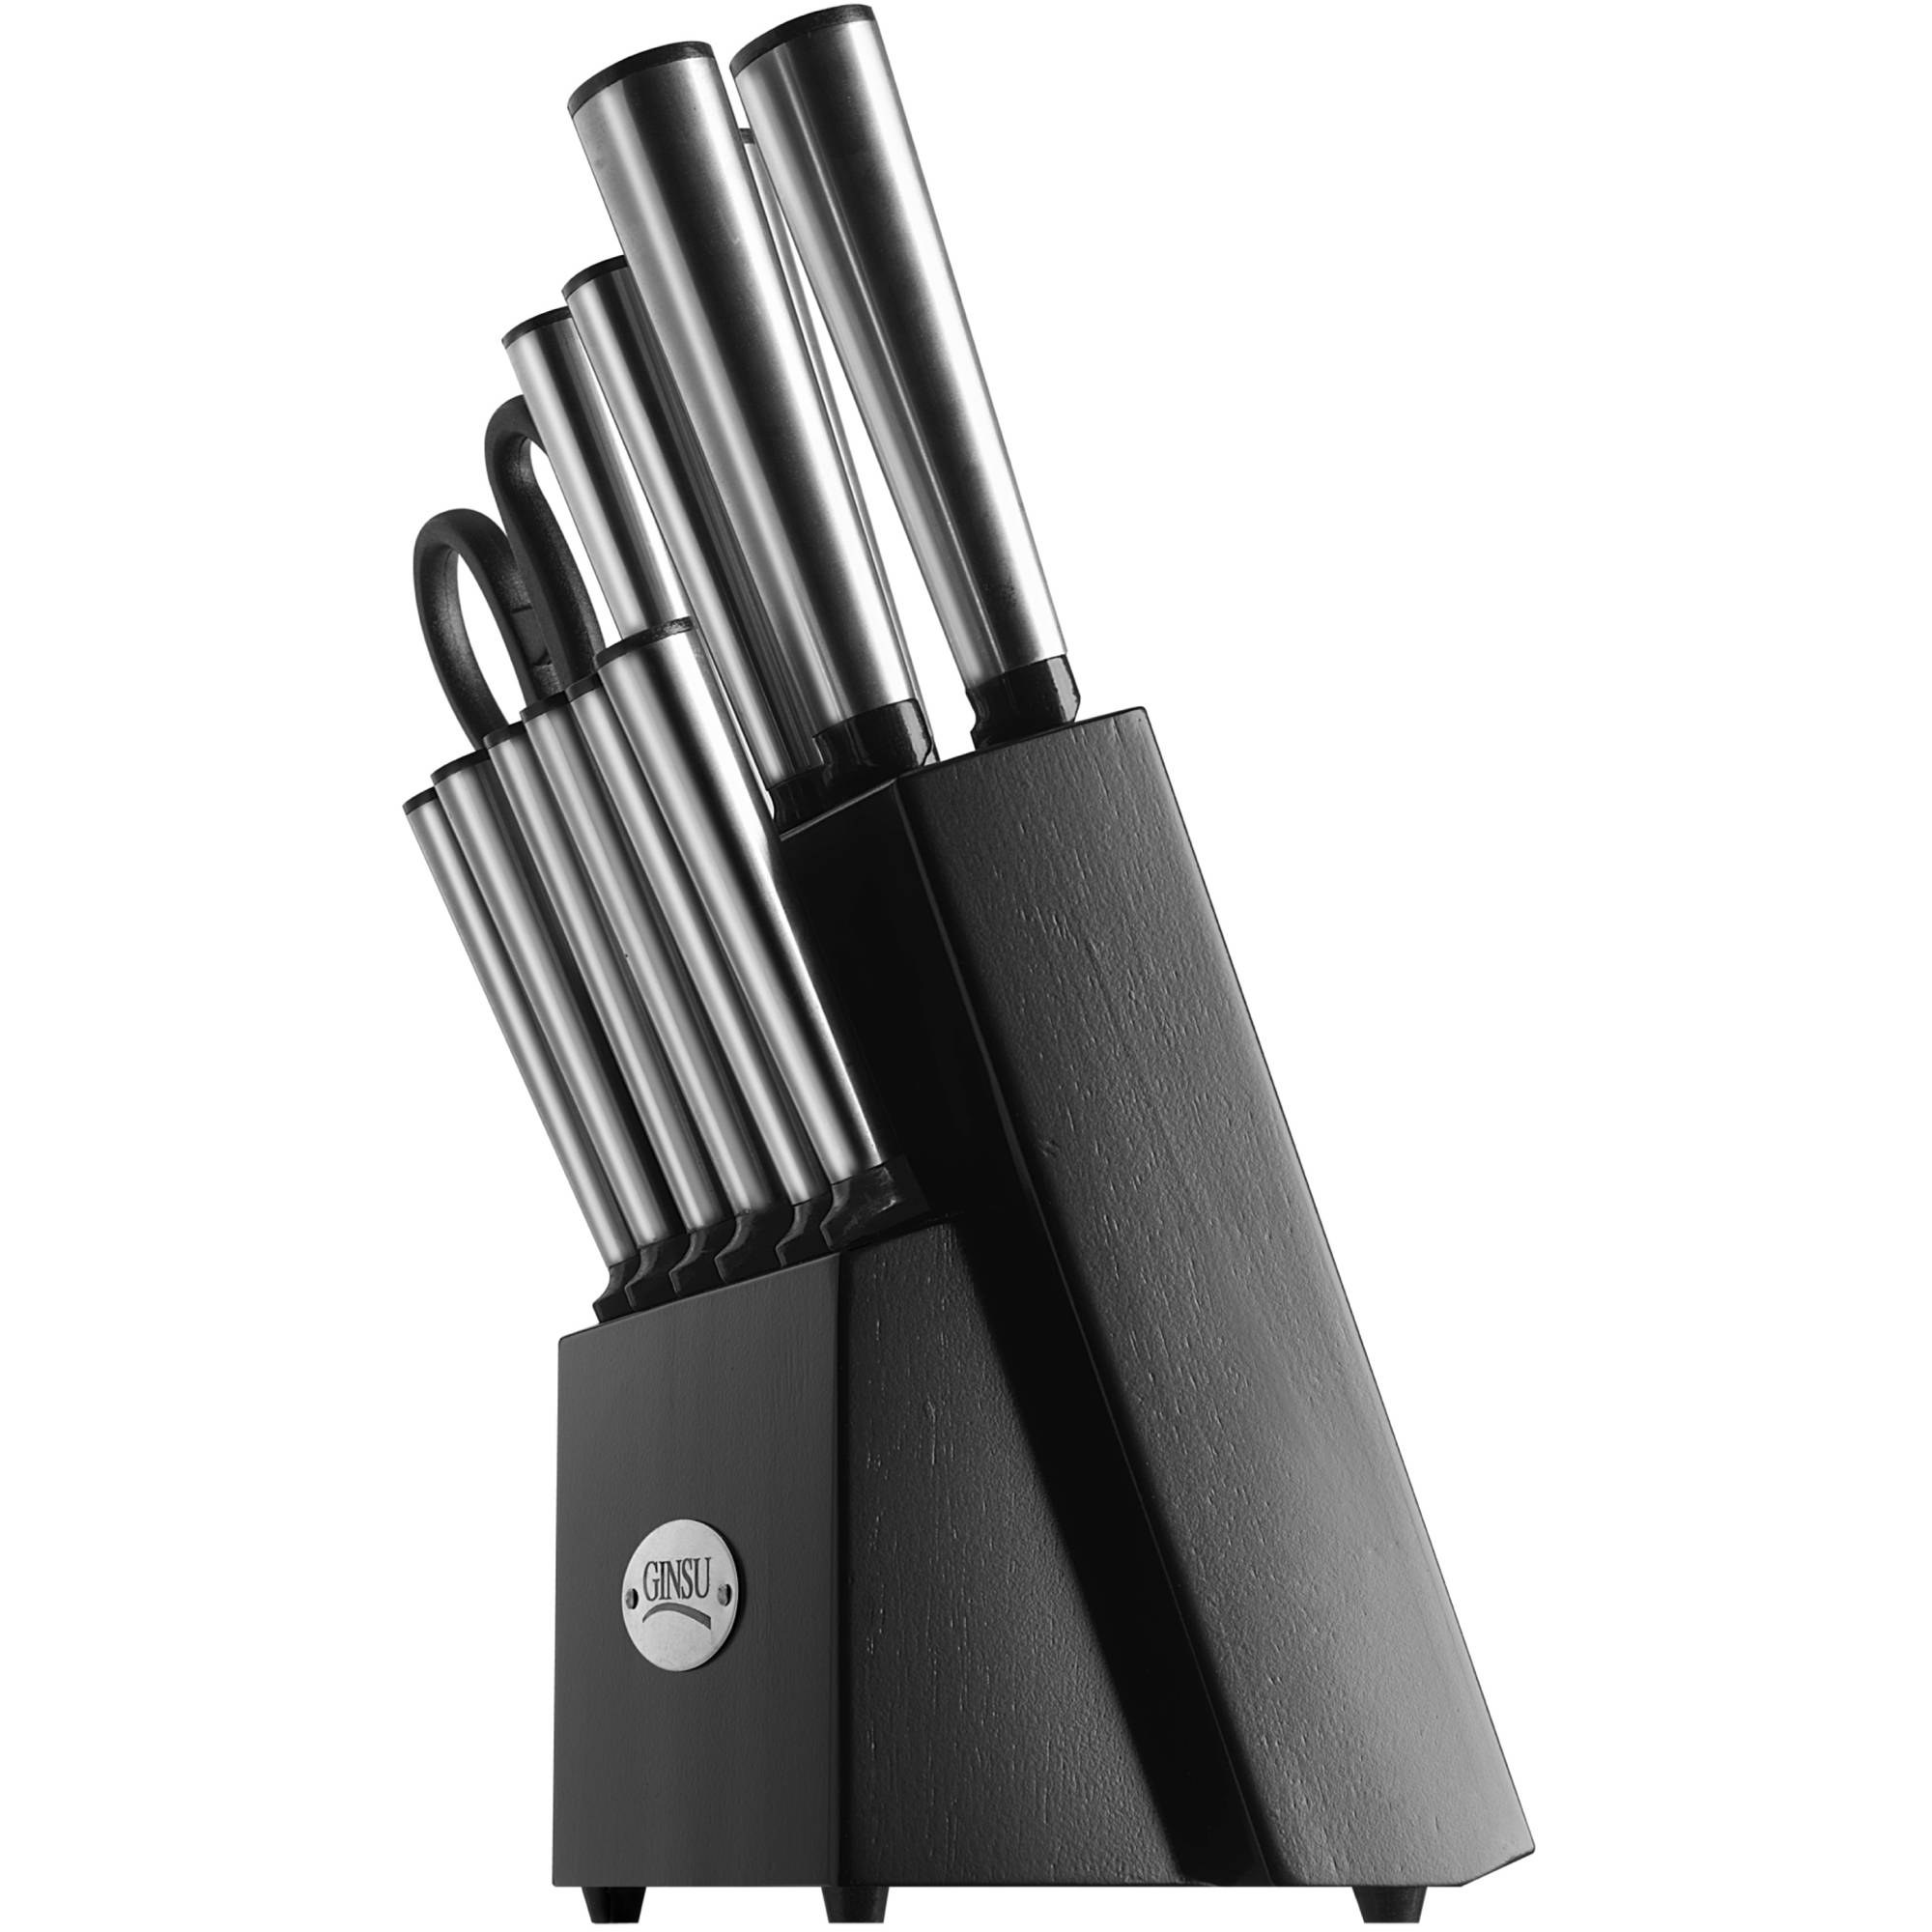 Ginsu Koden Series 14-Piece Stainless Steel Serrated Knife Set � Cutlery Set with Stainless Steel Kitchen... by Ginsu Brands a Scott Fetzer company